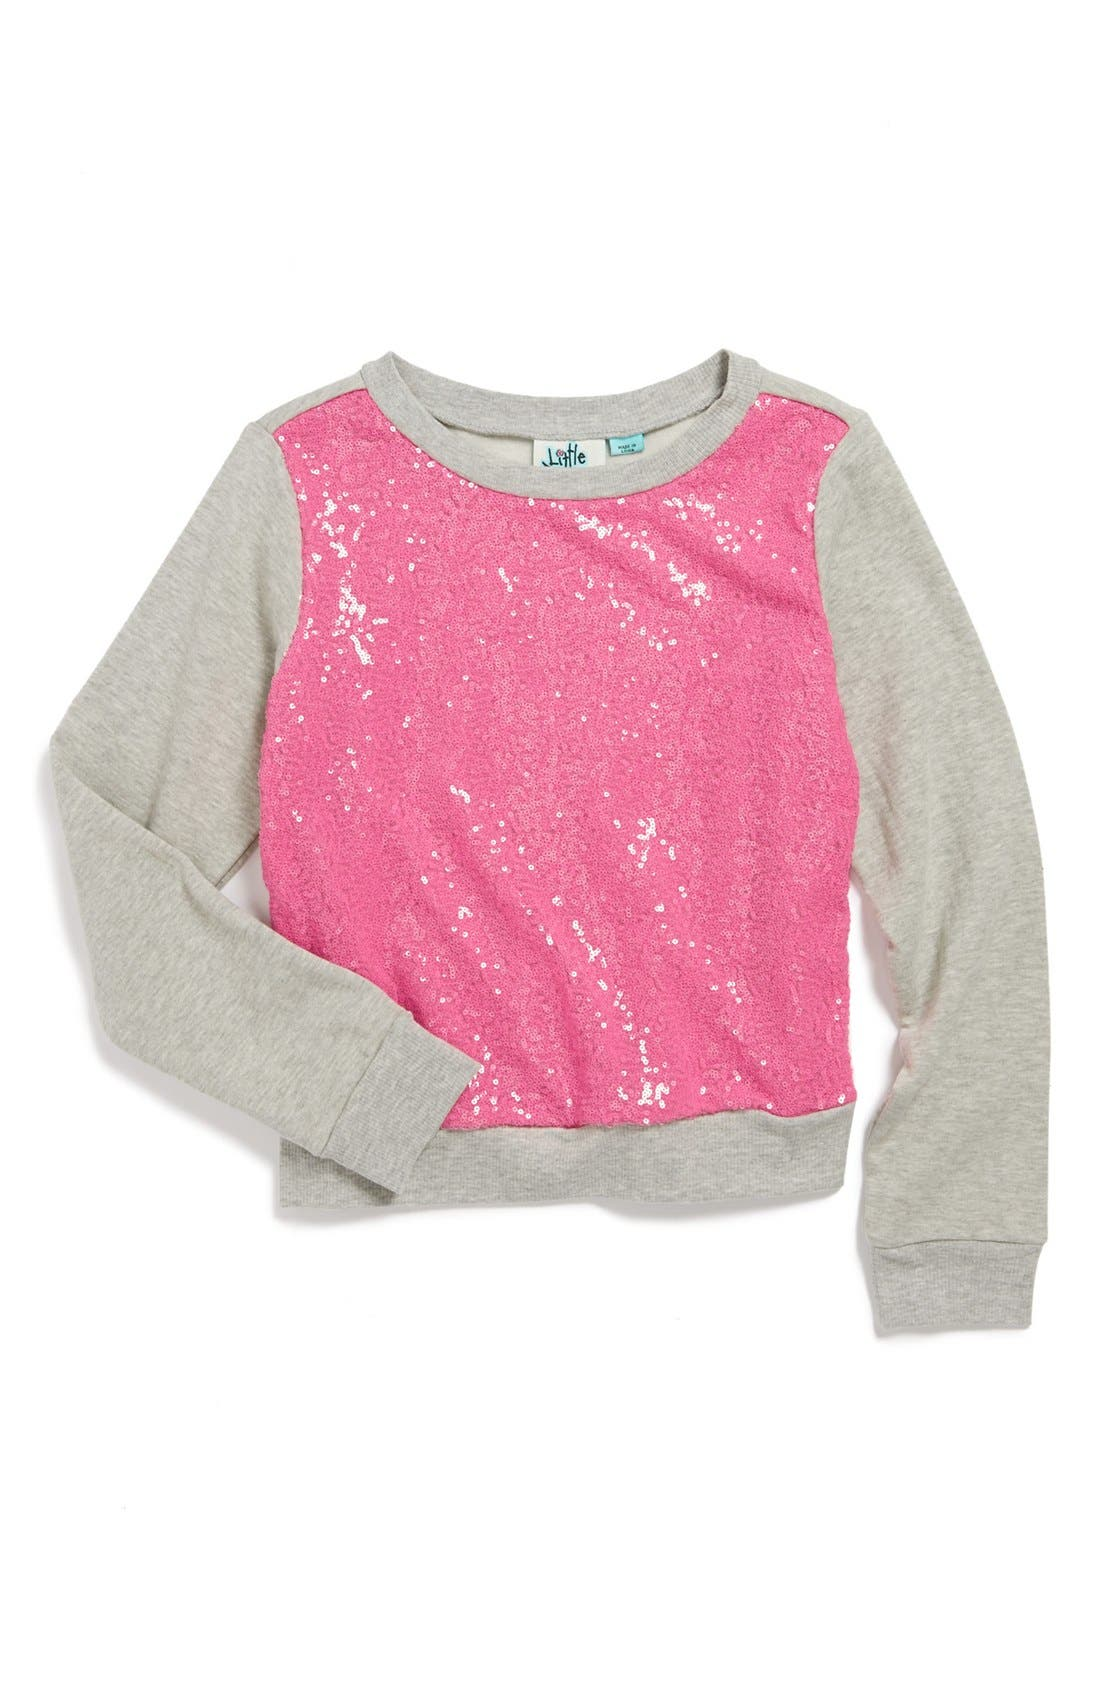 Alternate Image 1 Selected - Miken Clothing Sequin Sweatshirt (Big Girls)